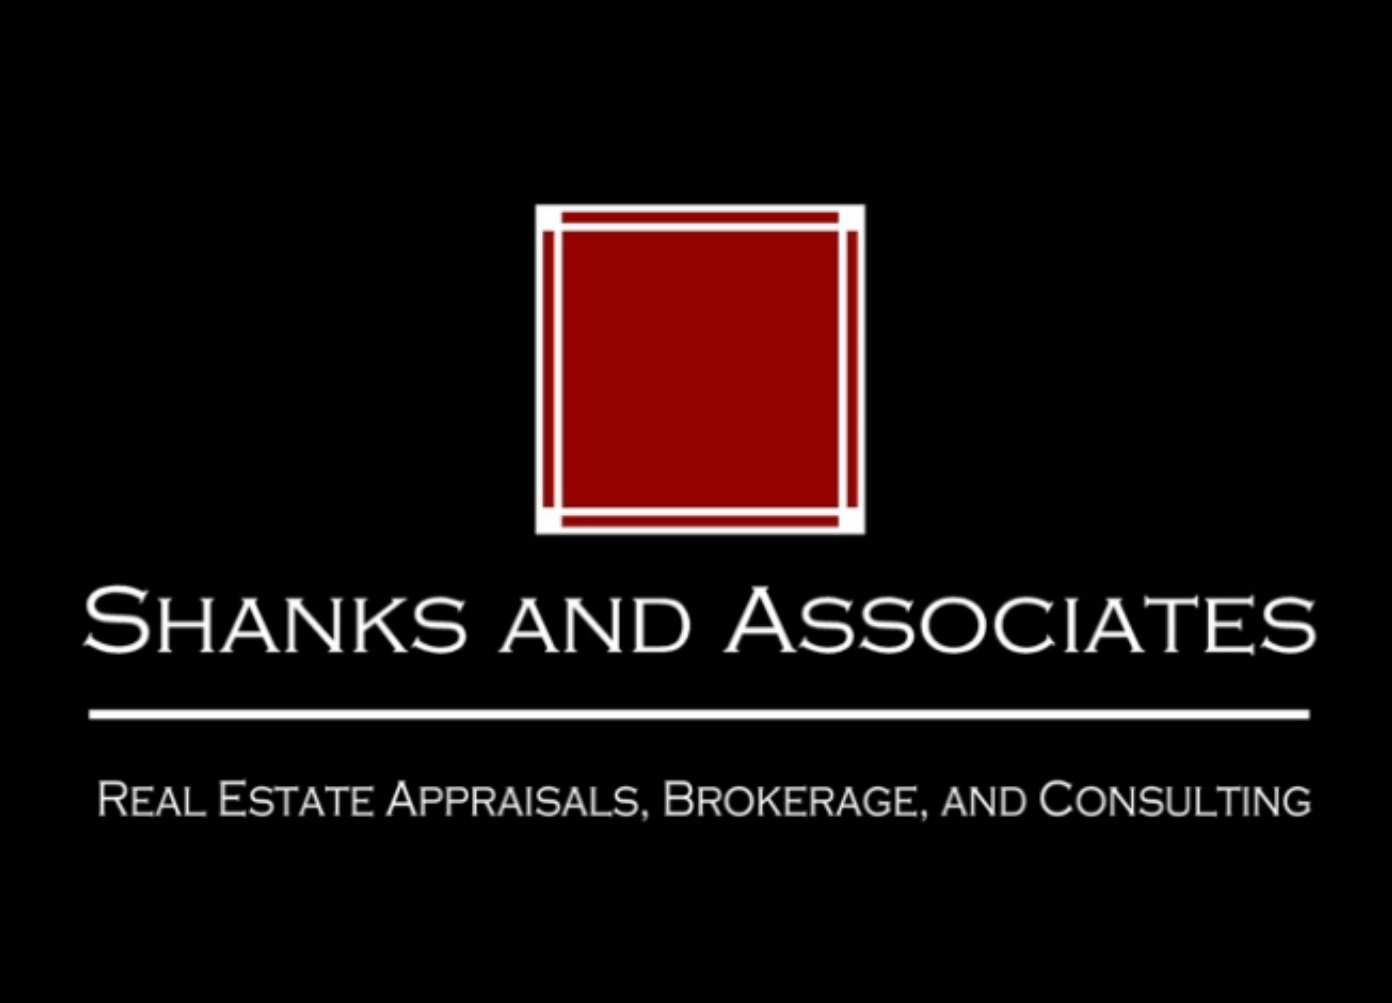 Shanks and Associates